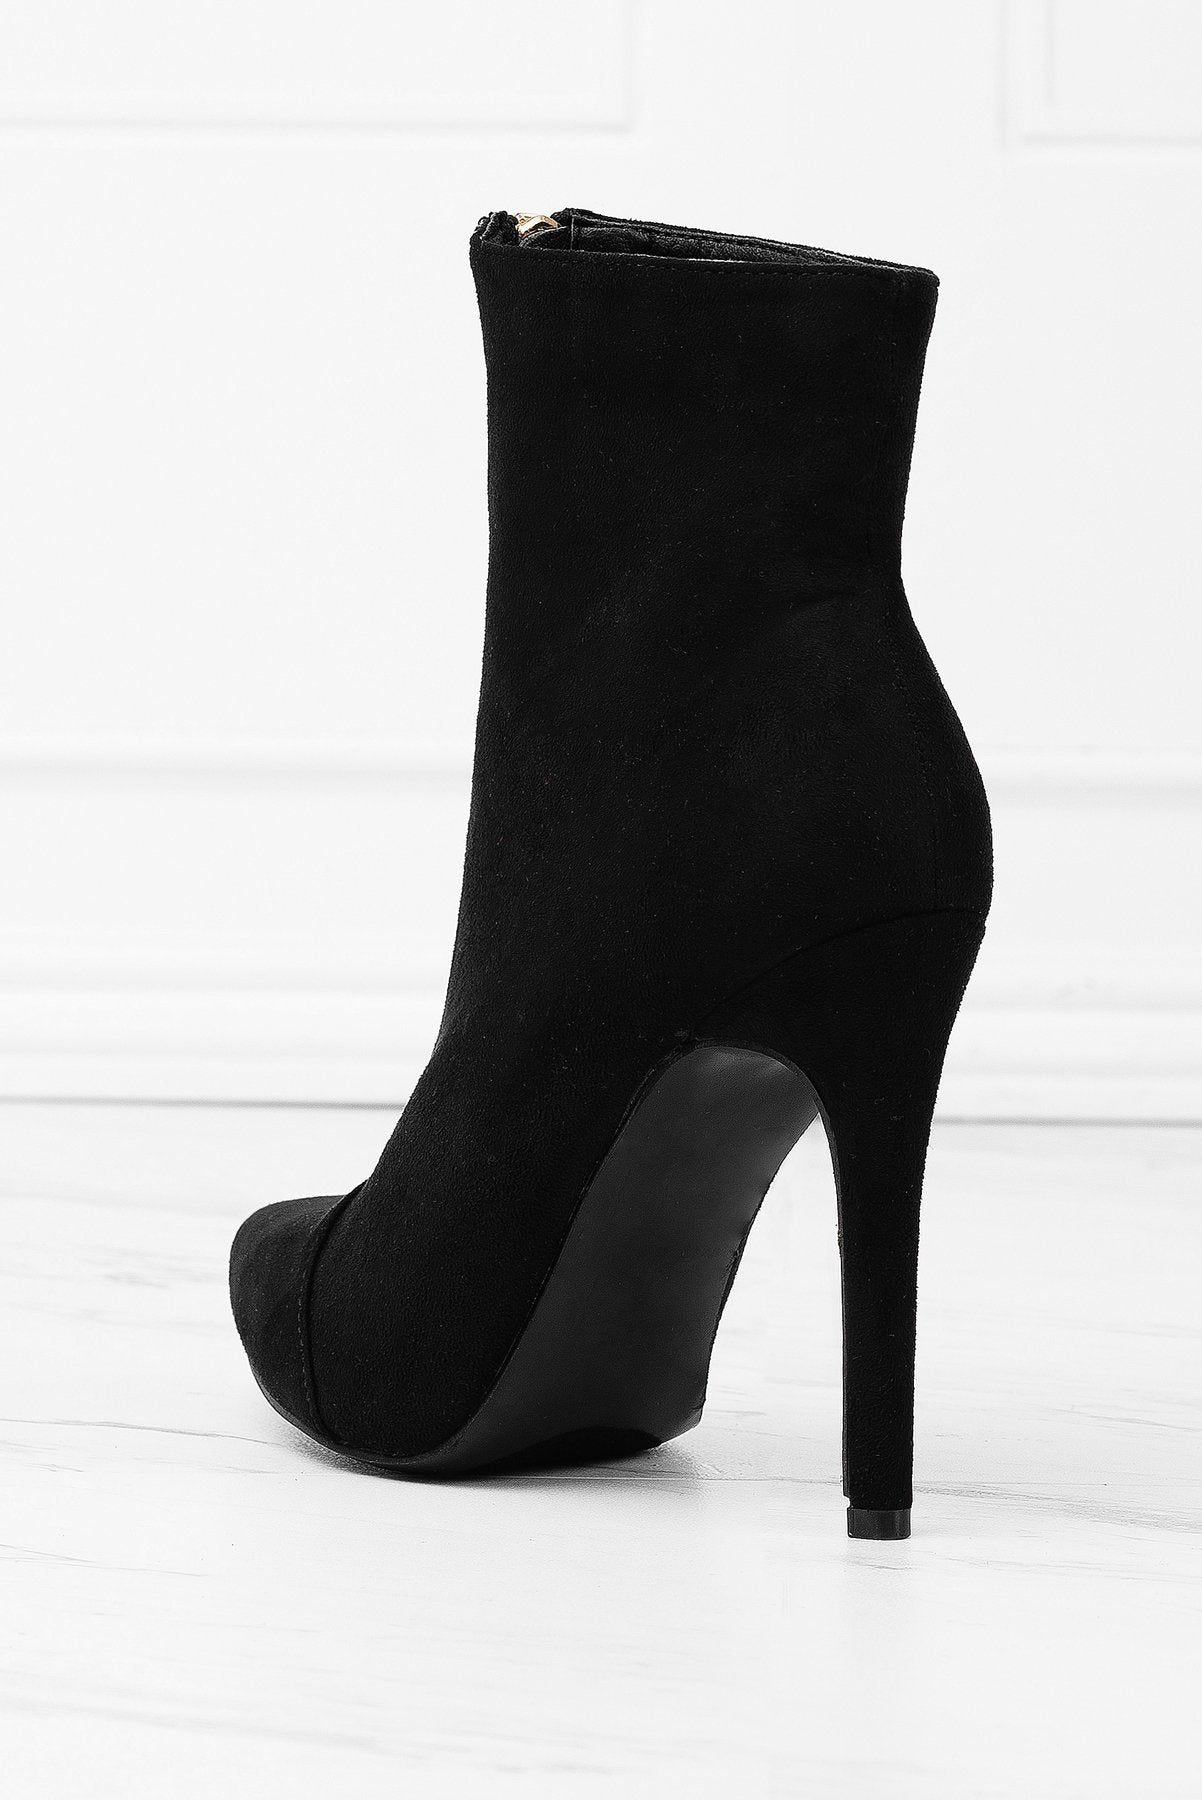 Shoes - Over The Edge Booties - Black